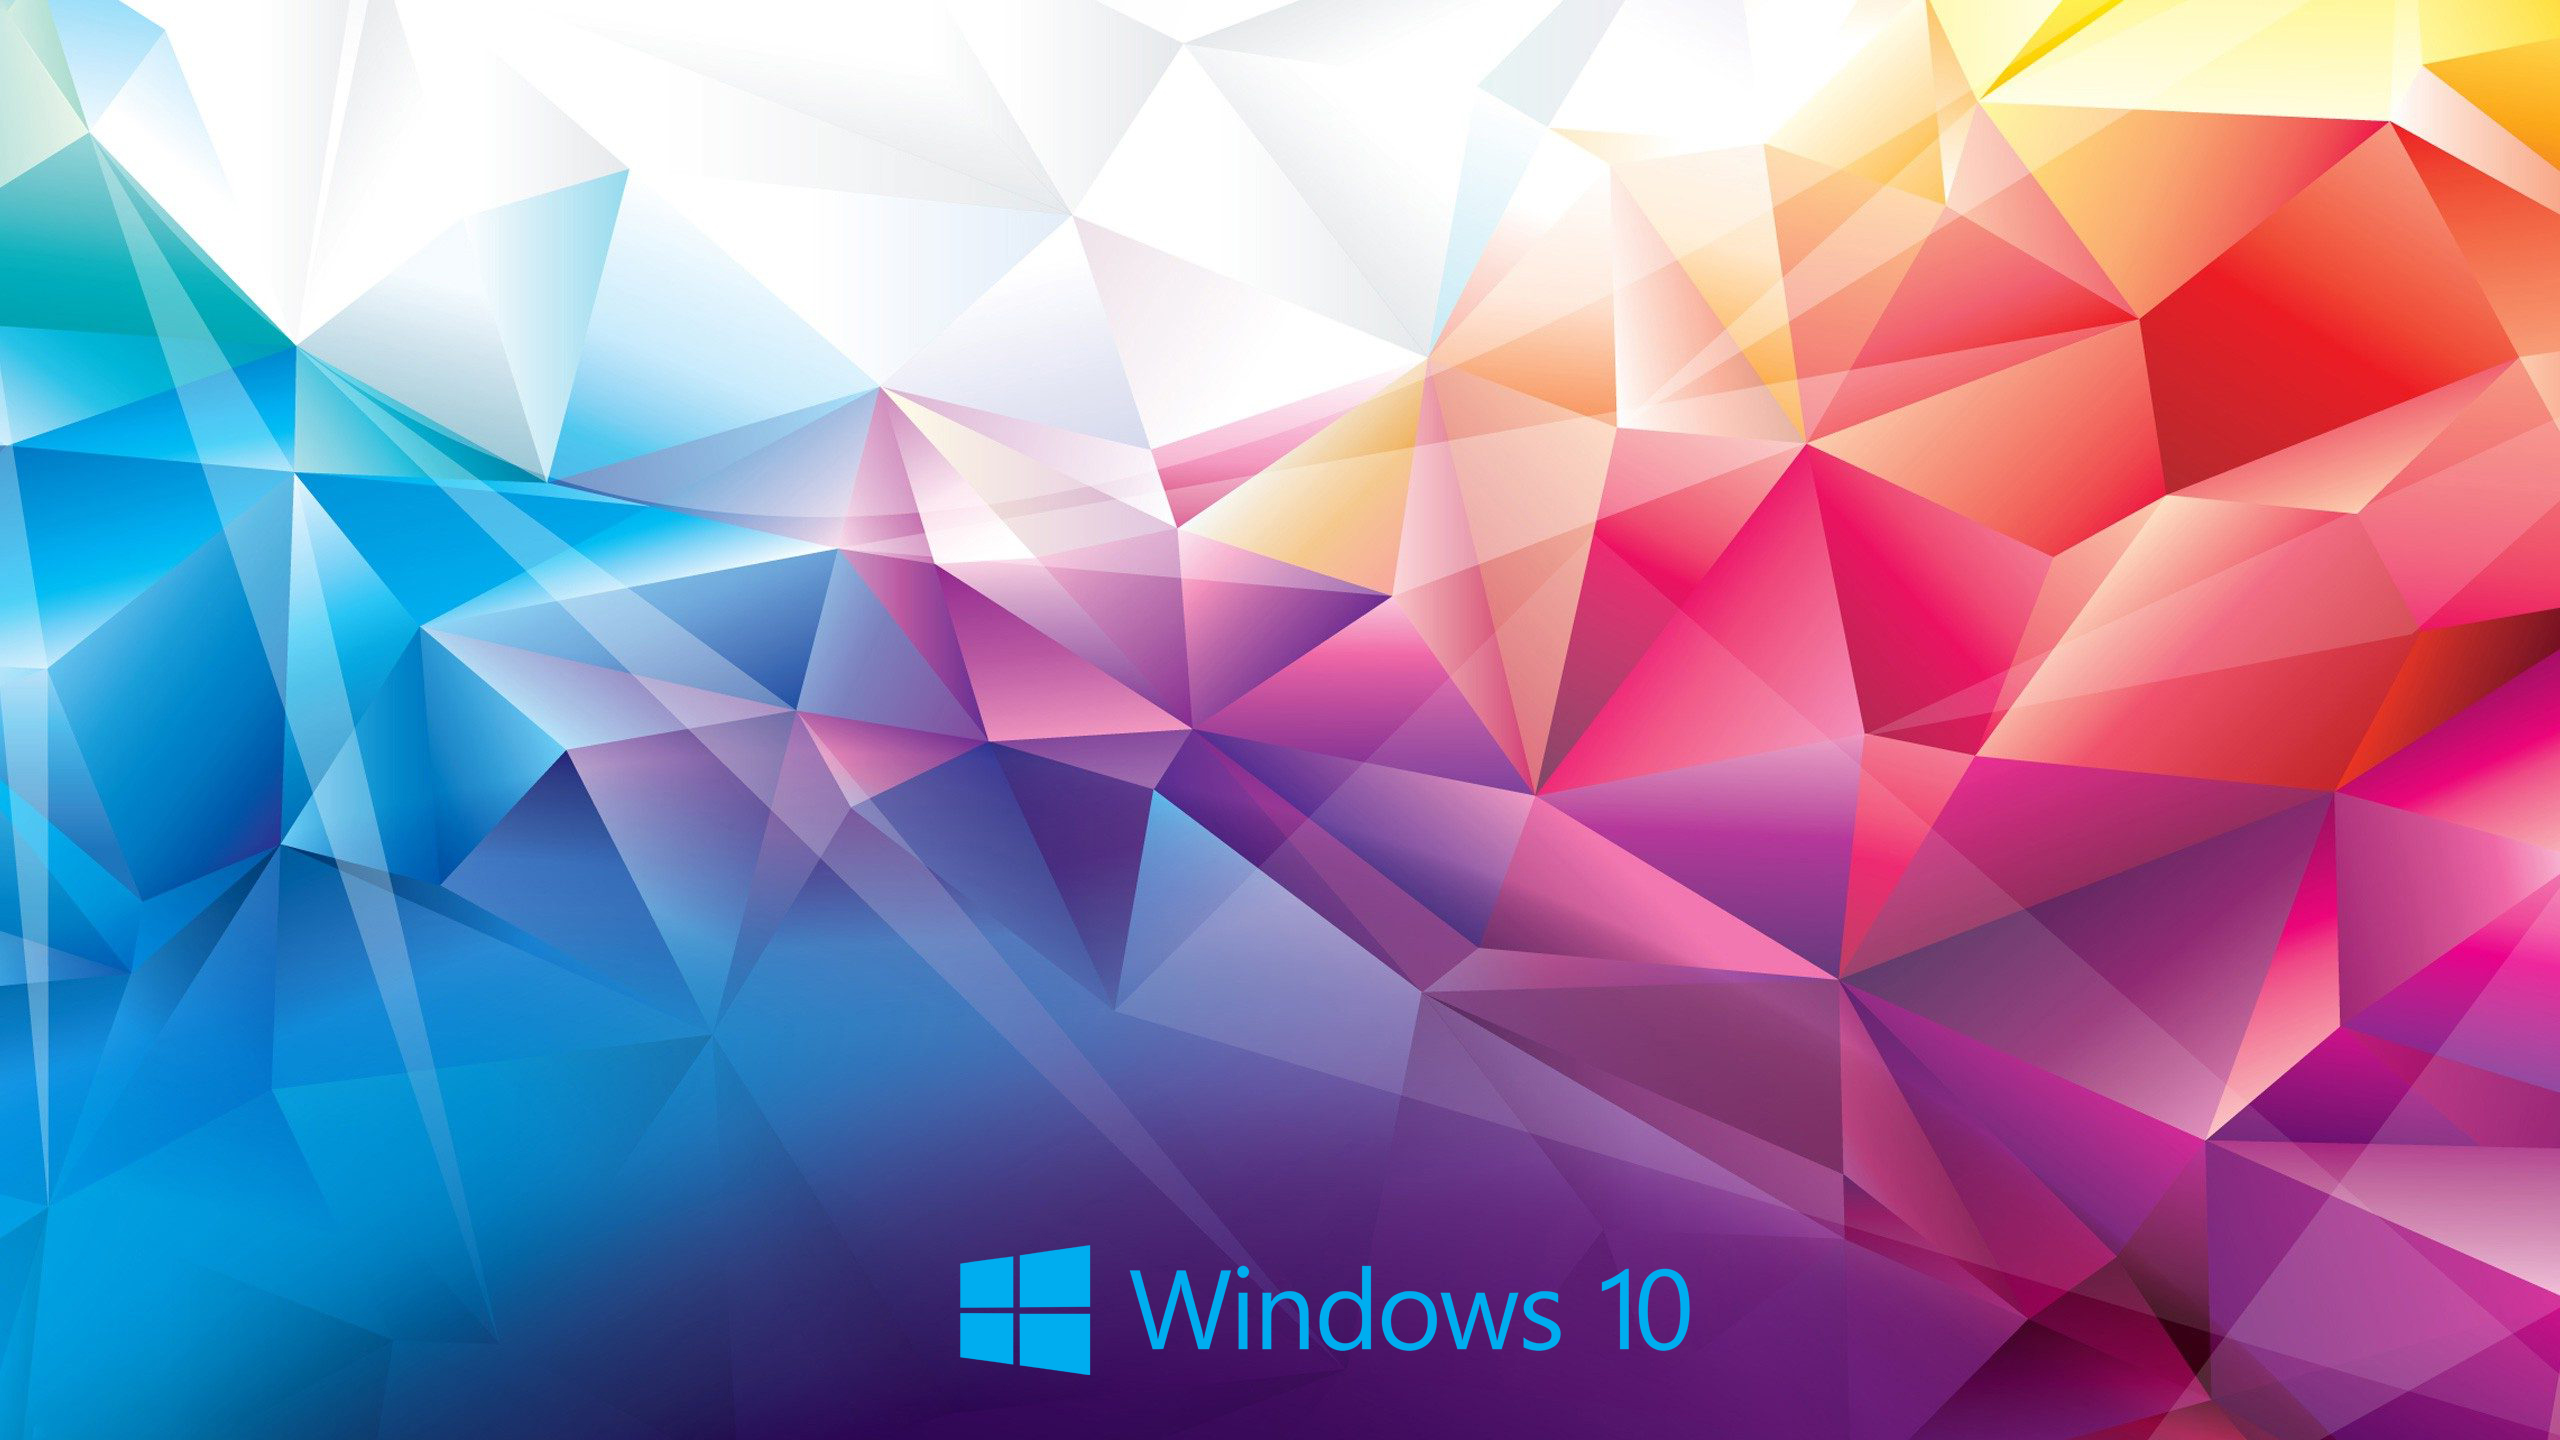 Windows 10 Wallpaper Abstract 3D Colorful Polygon - HD